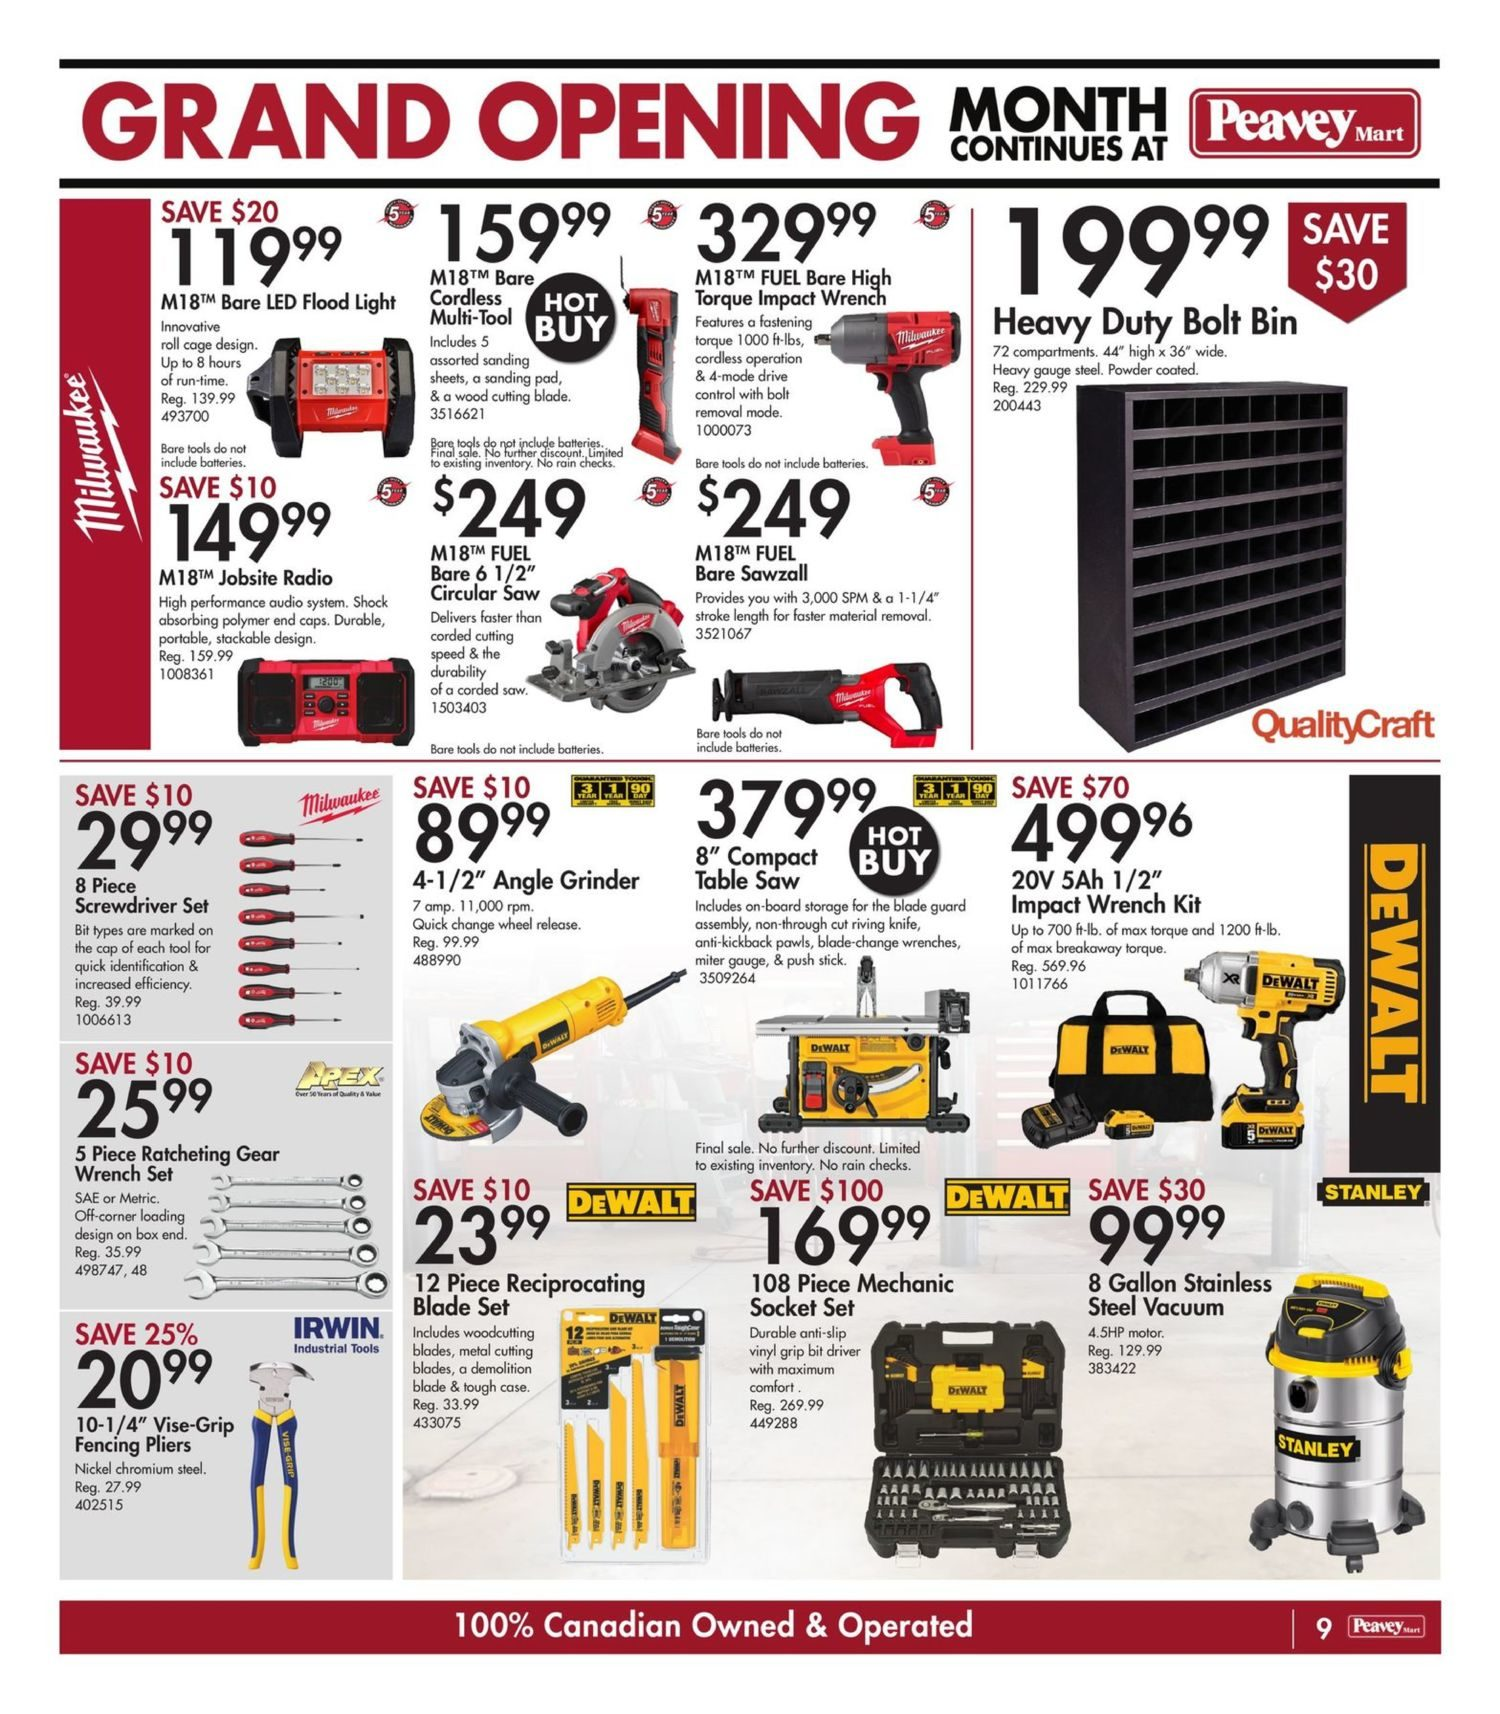 Peavey Mart - Weekly Flyer Specials - National Grand Opening Celebration - Page 12